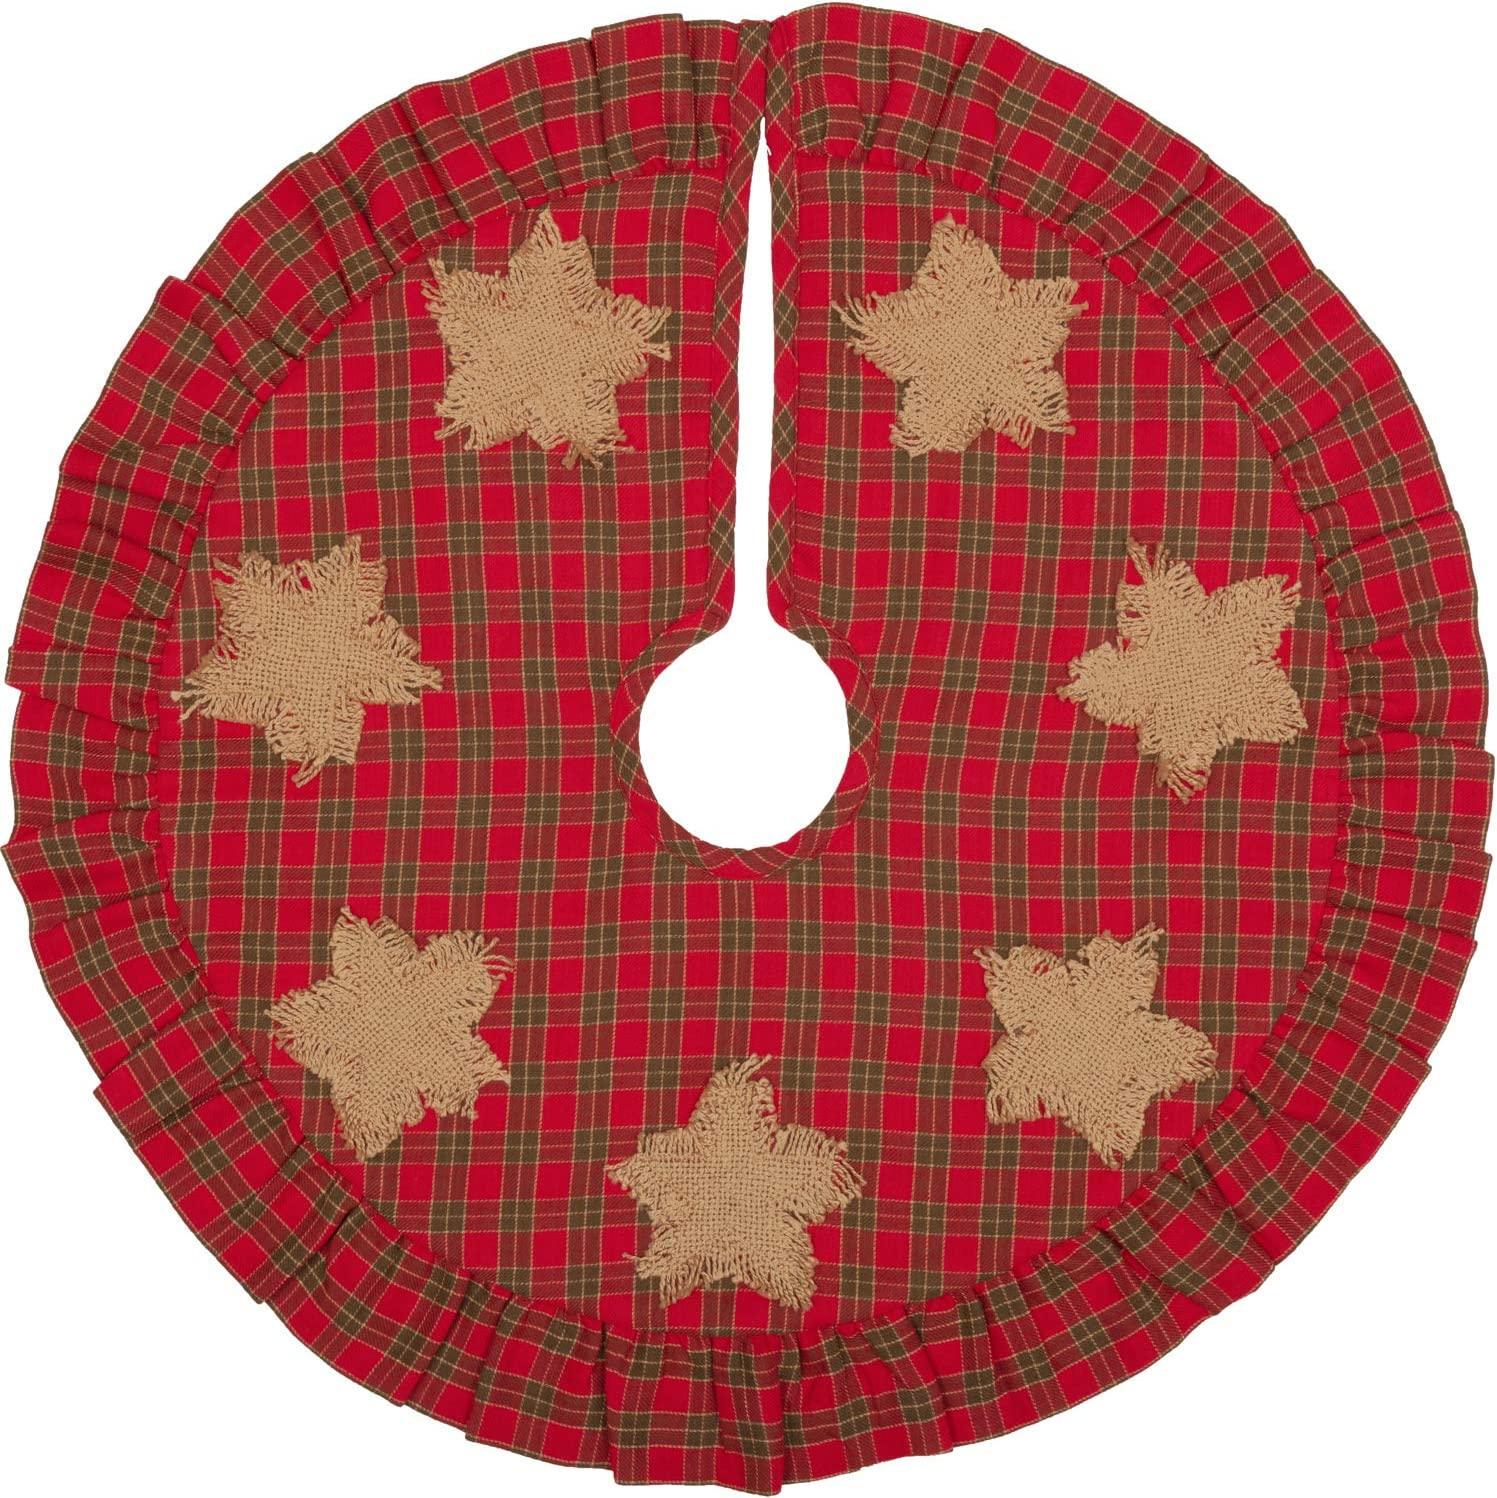 Amazon Com Vhc Brands Forreston Burlap Star Mini 21 Tree Skirt Diameter Red Home Kitchen,Farmhouse Country Kitchen Lighting